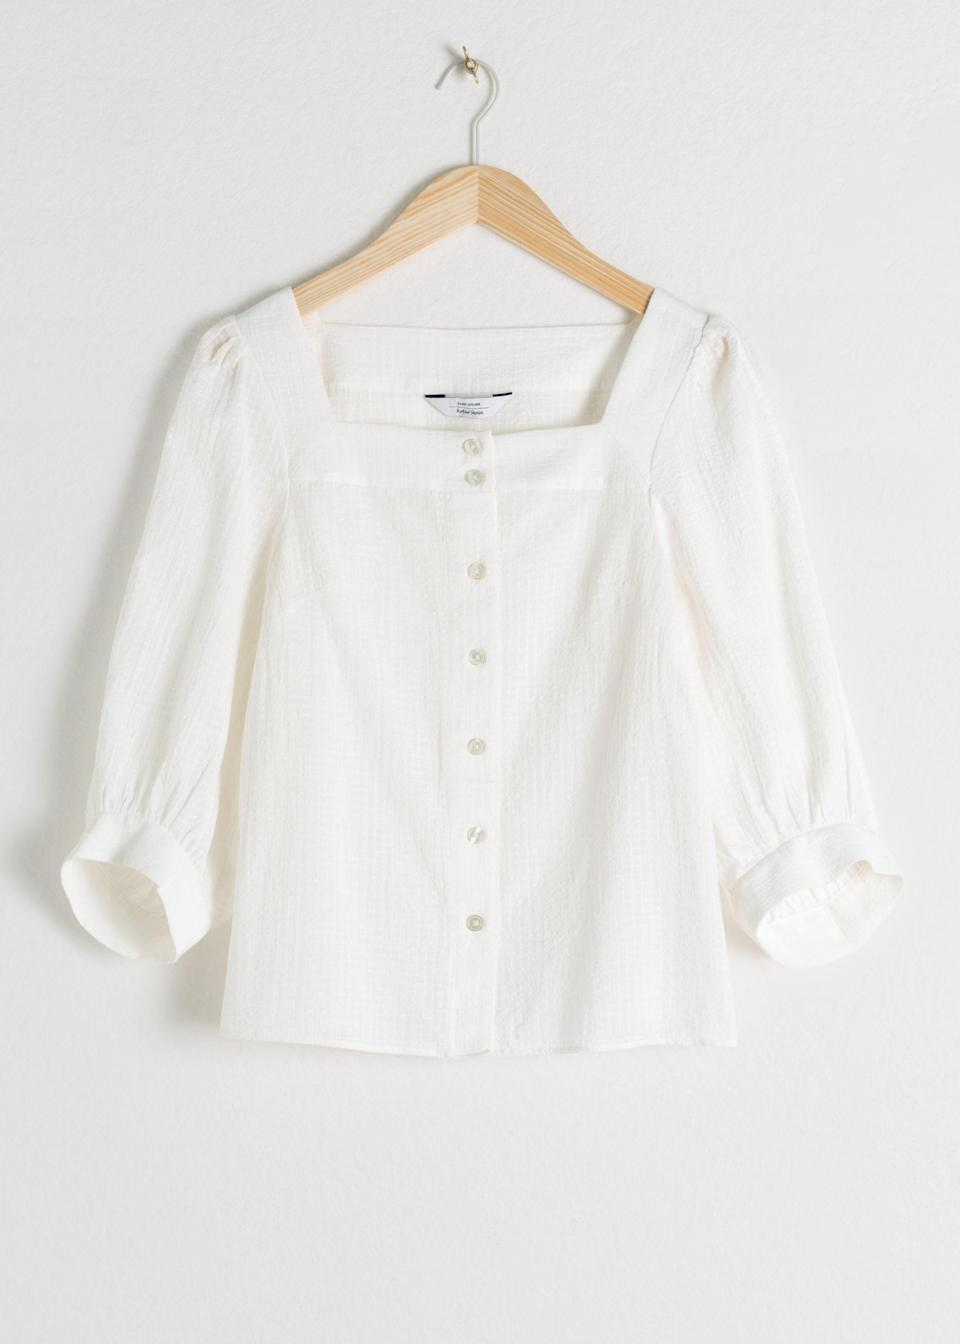 """$69, & Other Stories. <a href=""""https://www.stories.com/en_usd/clothing/blouses-shirts/blouses/product.plaid-puff-sleeve-blouse-white.0727763002.html"""" rel=""""nofollow noopener"""" target=""""_blank"""" data-ylk=""""slk:Get it now!"""" class=""""link rapid-noclick-resp"""">Get it now!</a>"""